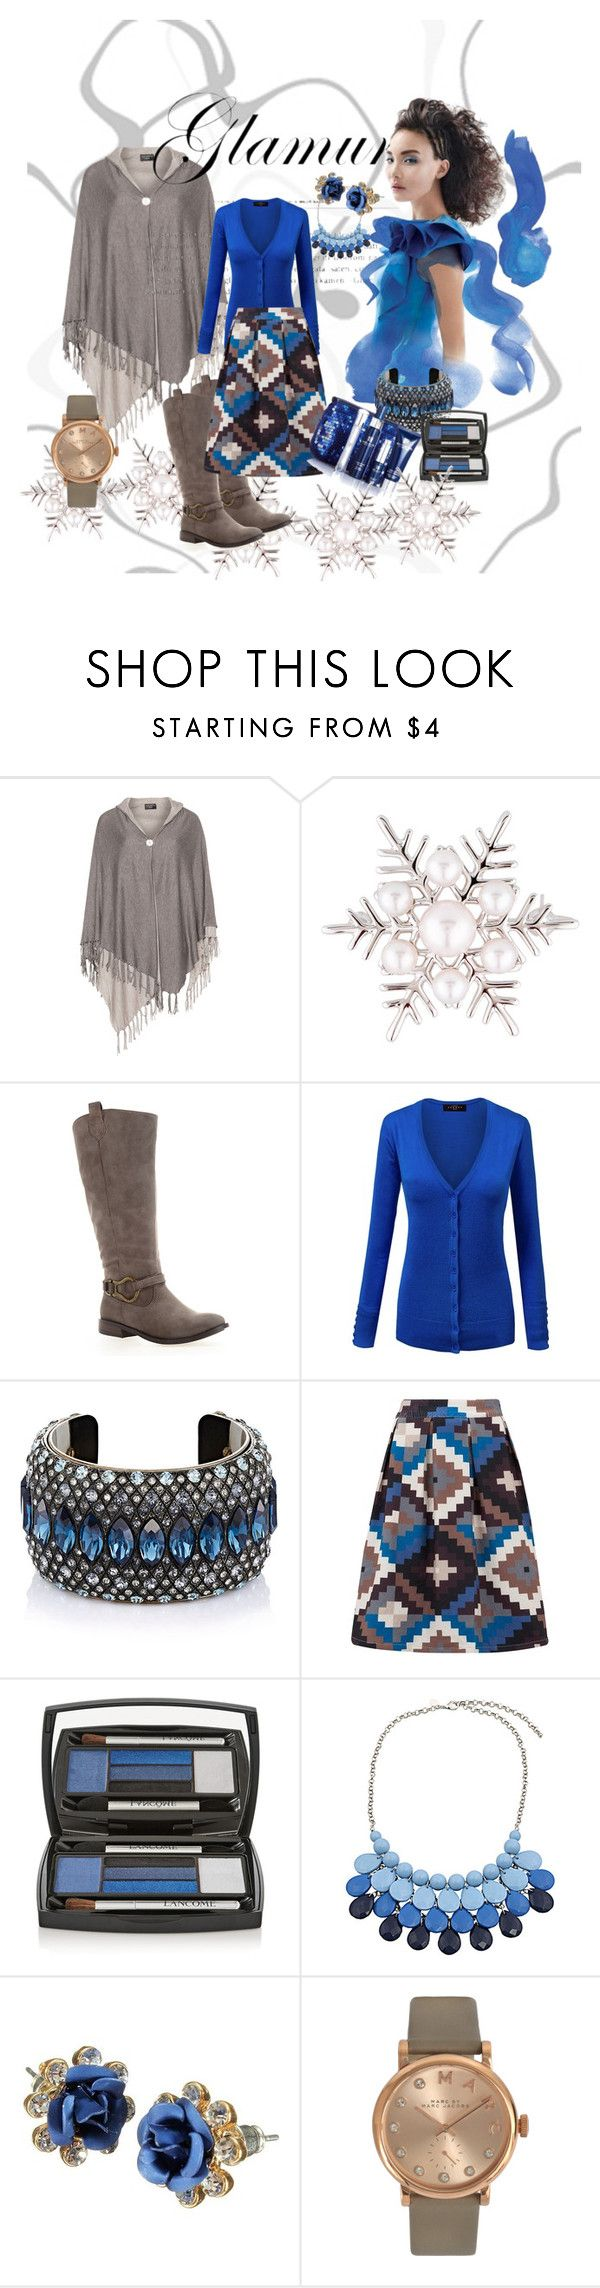 """""""blue"""" by berbicazemina ❤ liked on Polyvore featuring Mikimoto, Avenue, Lanvin, Almost Famous, Lancôme, Chicnova Fashion and Marc by Marc Jacobs"""